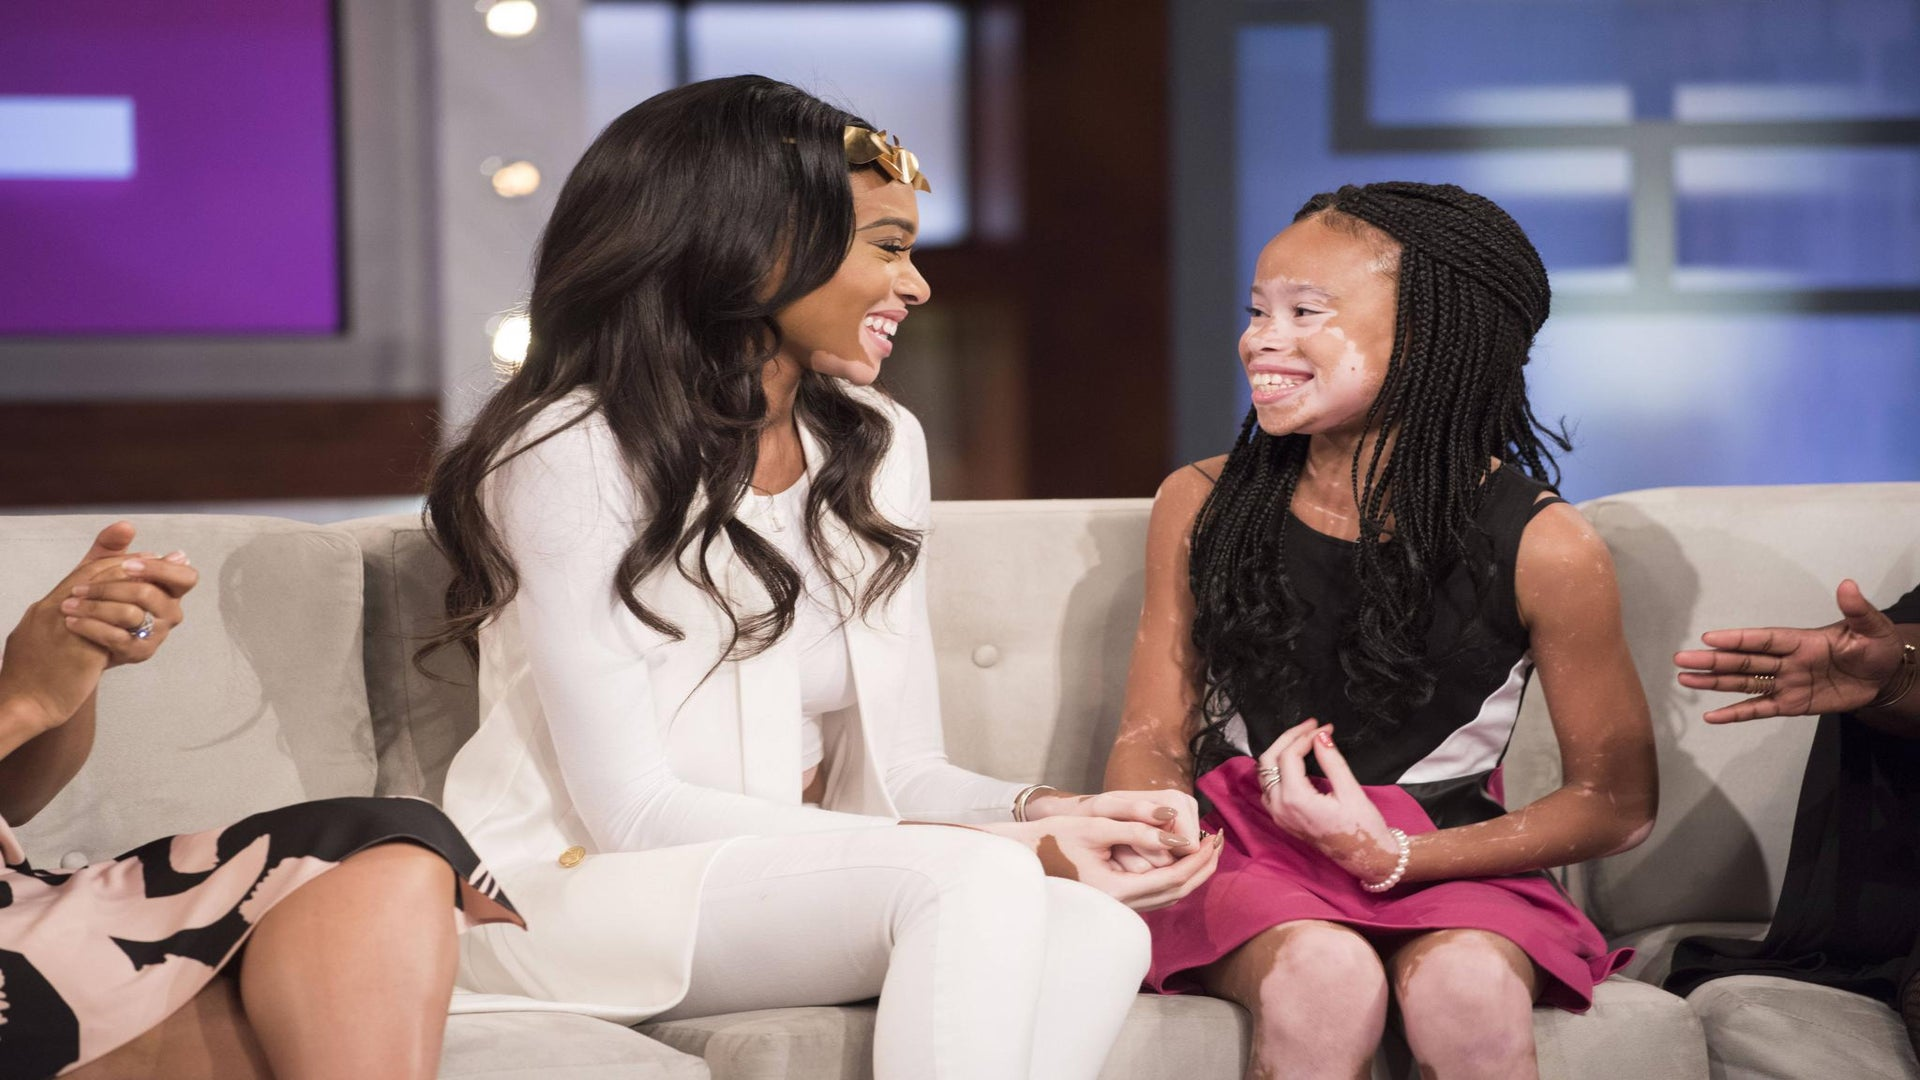 Exclusive: Winnie Harlow Surprises 10-Year-Old Aspiring Model, Offers Photoshoot